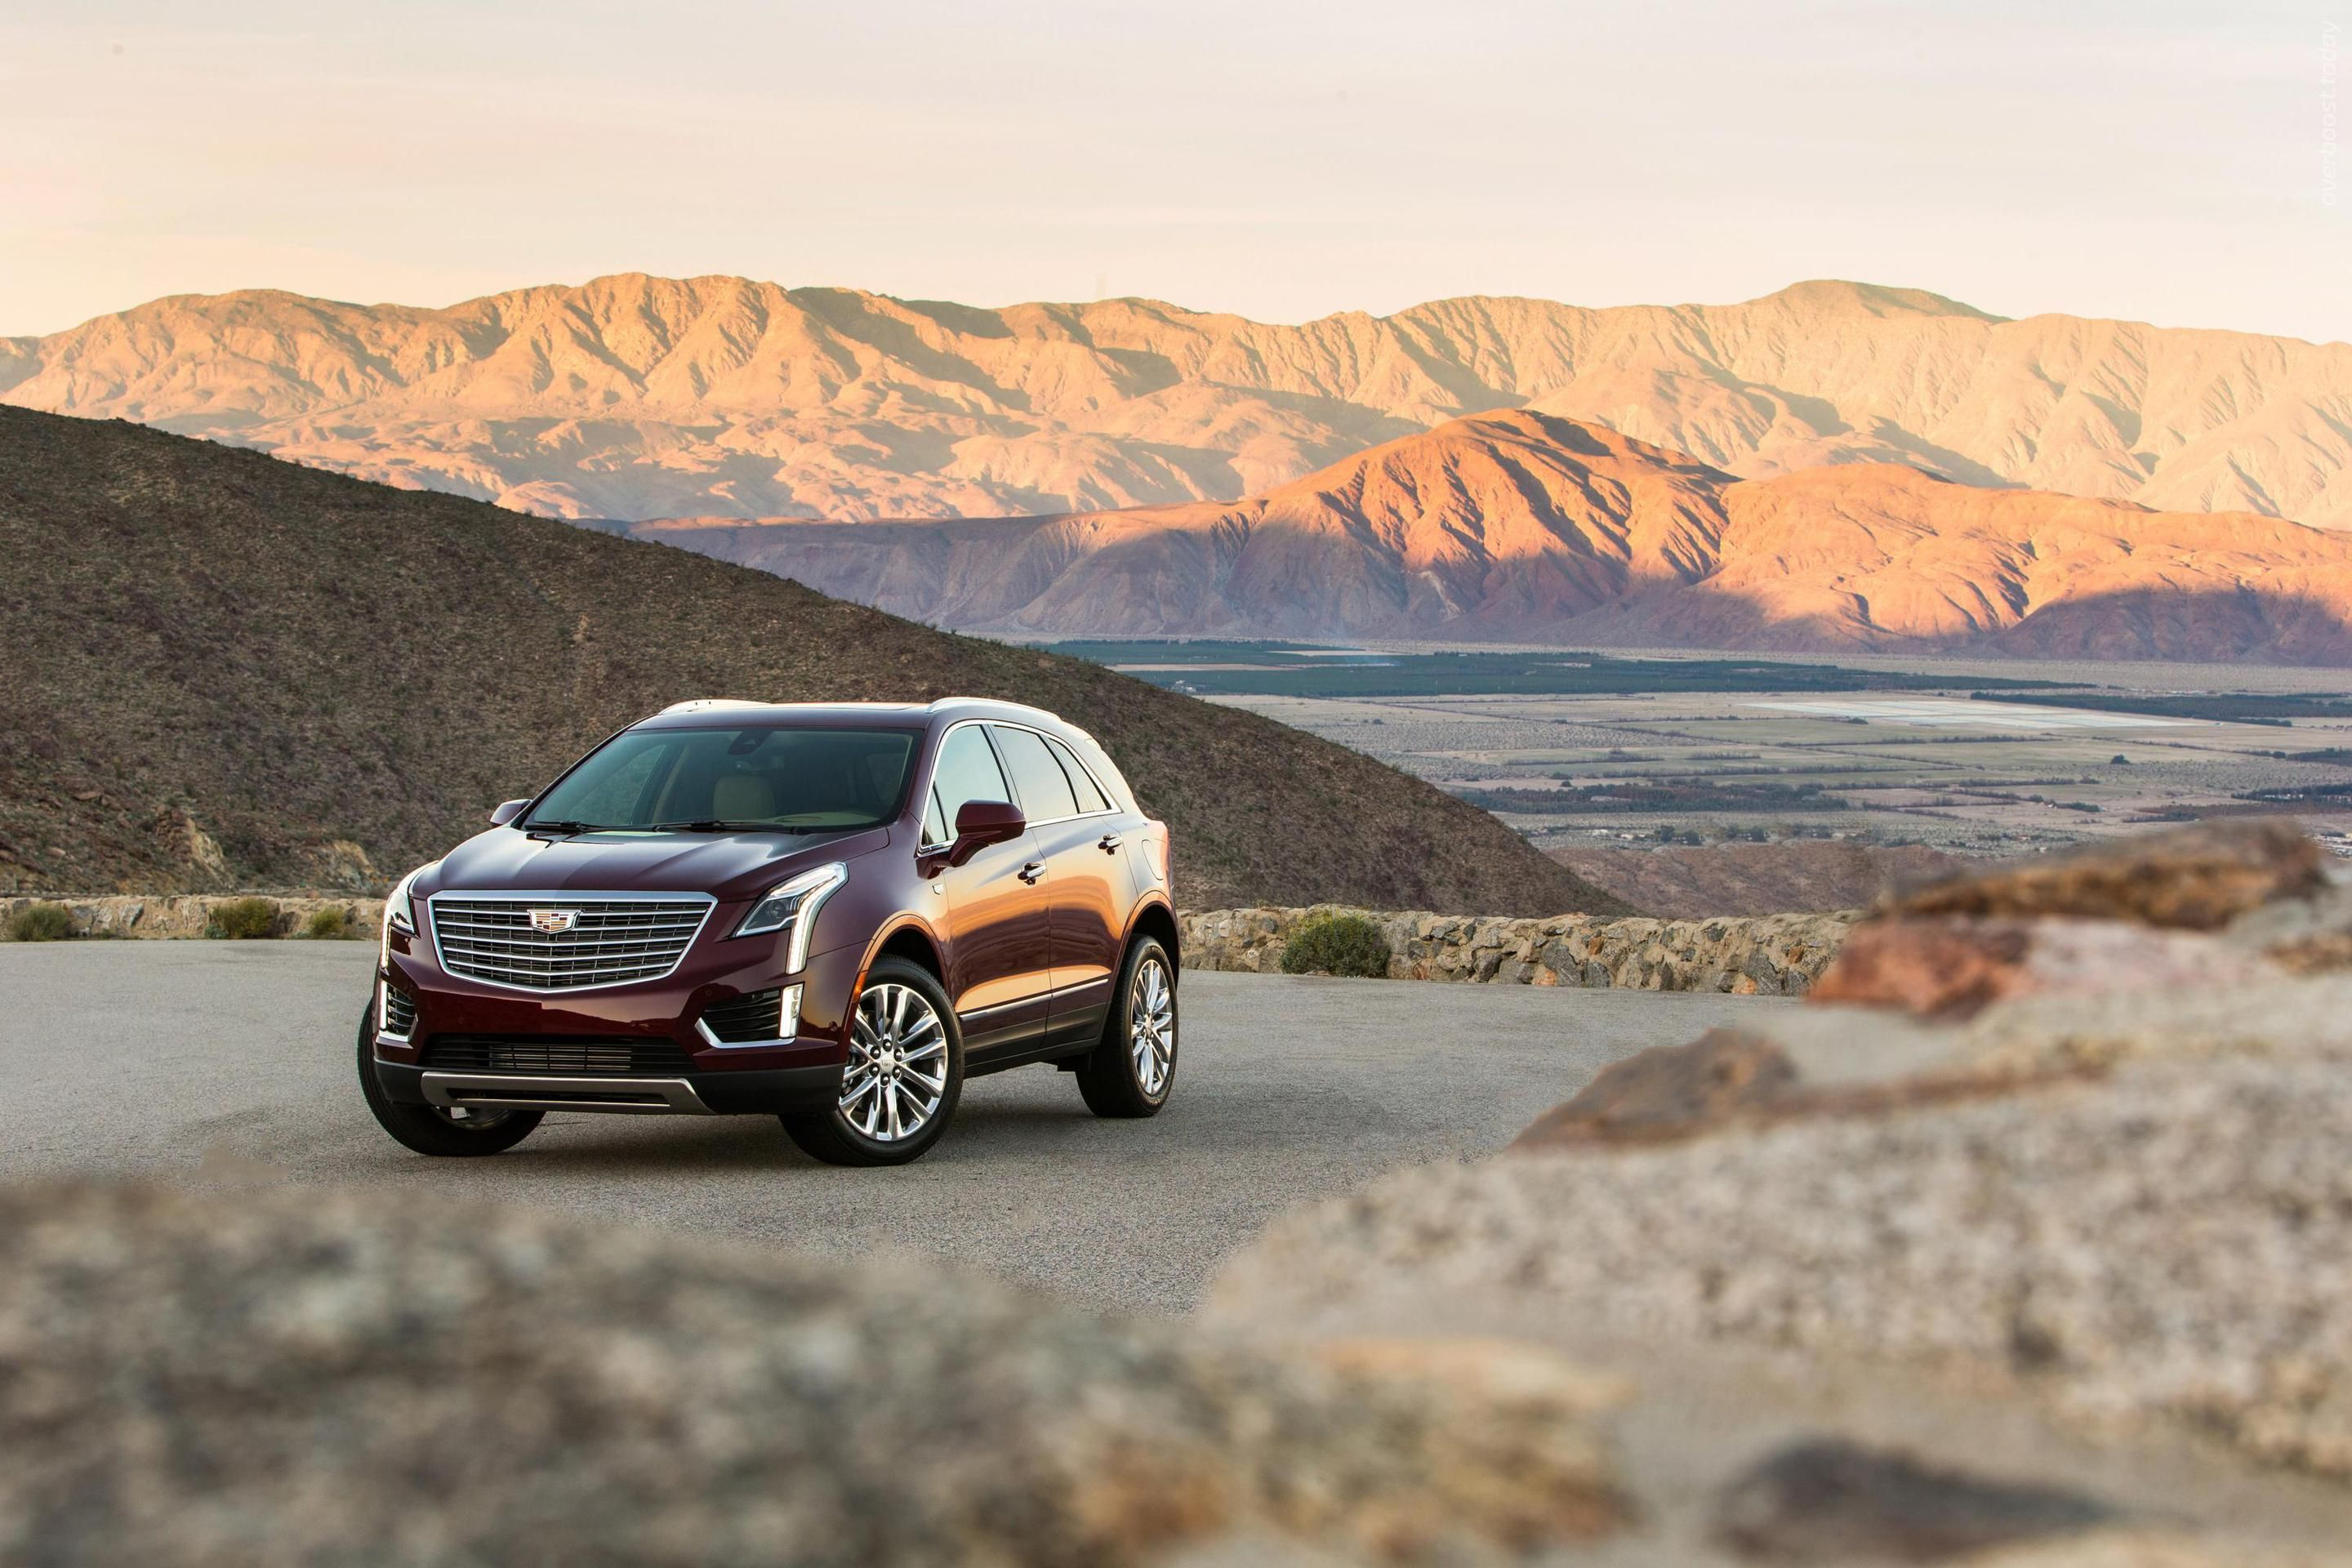 news official with turbo tag power debuts cadillac crossover roadshow pricing new price york